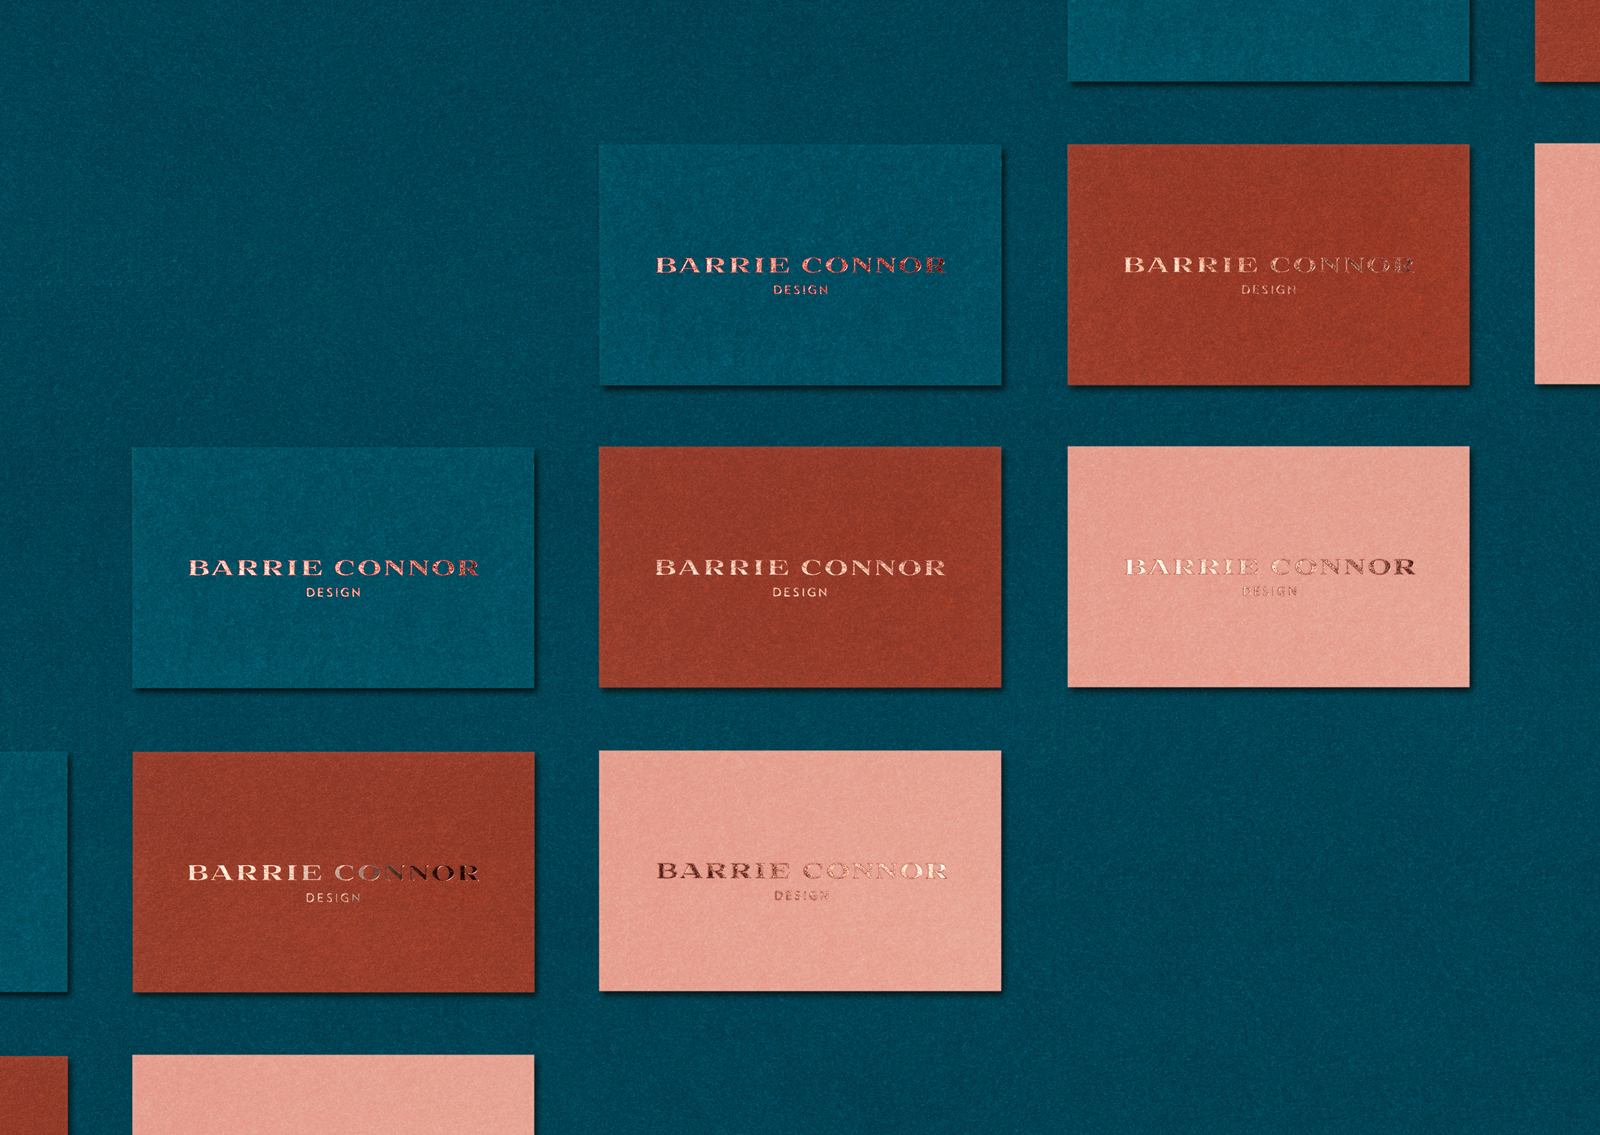 Barrie Connor business cards are created in 3 bespoke colours